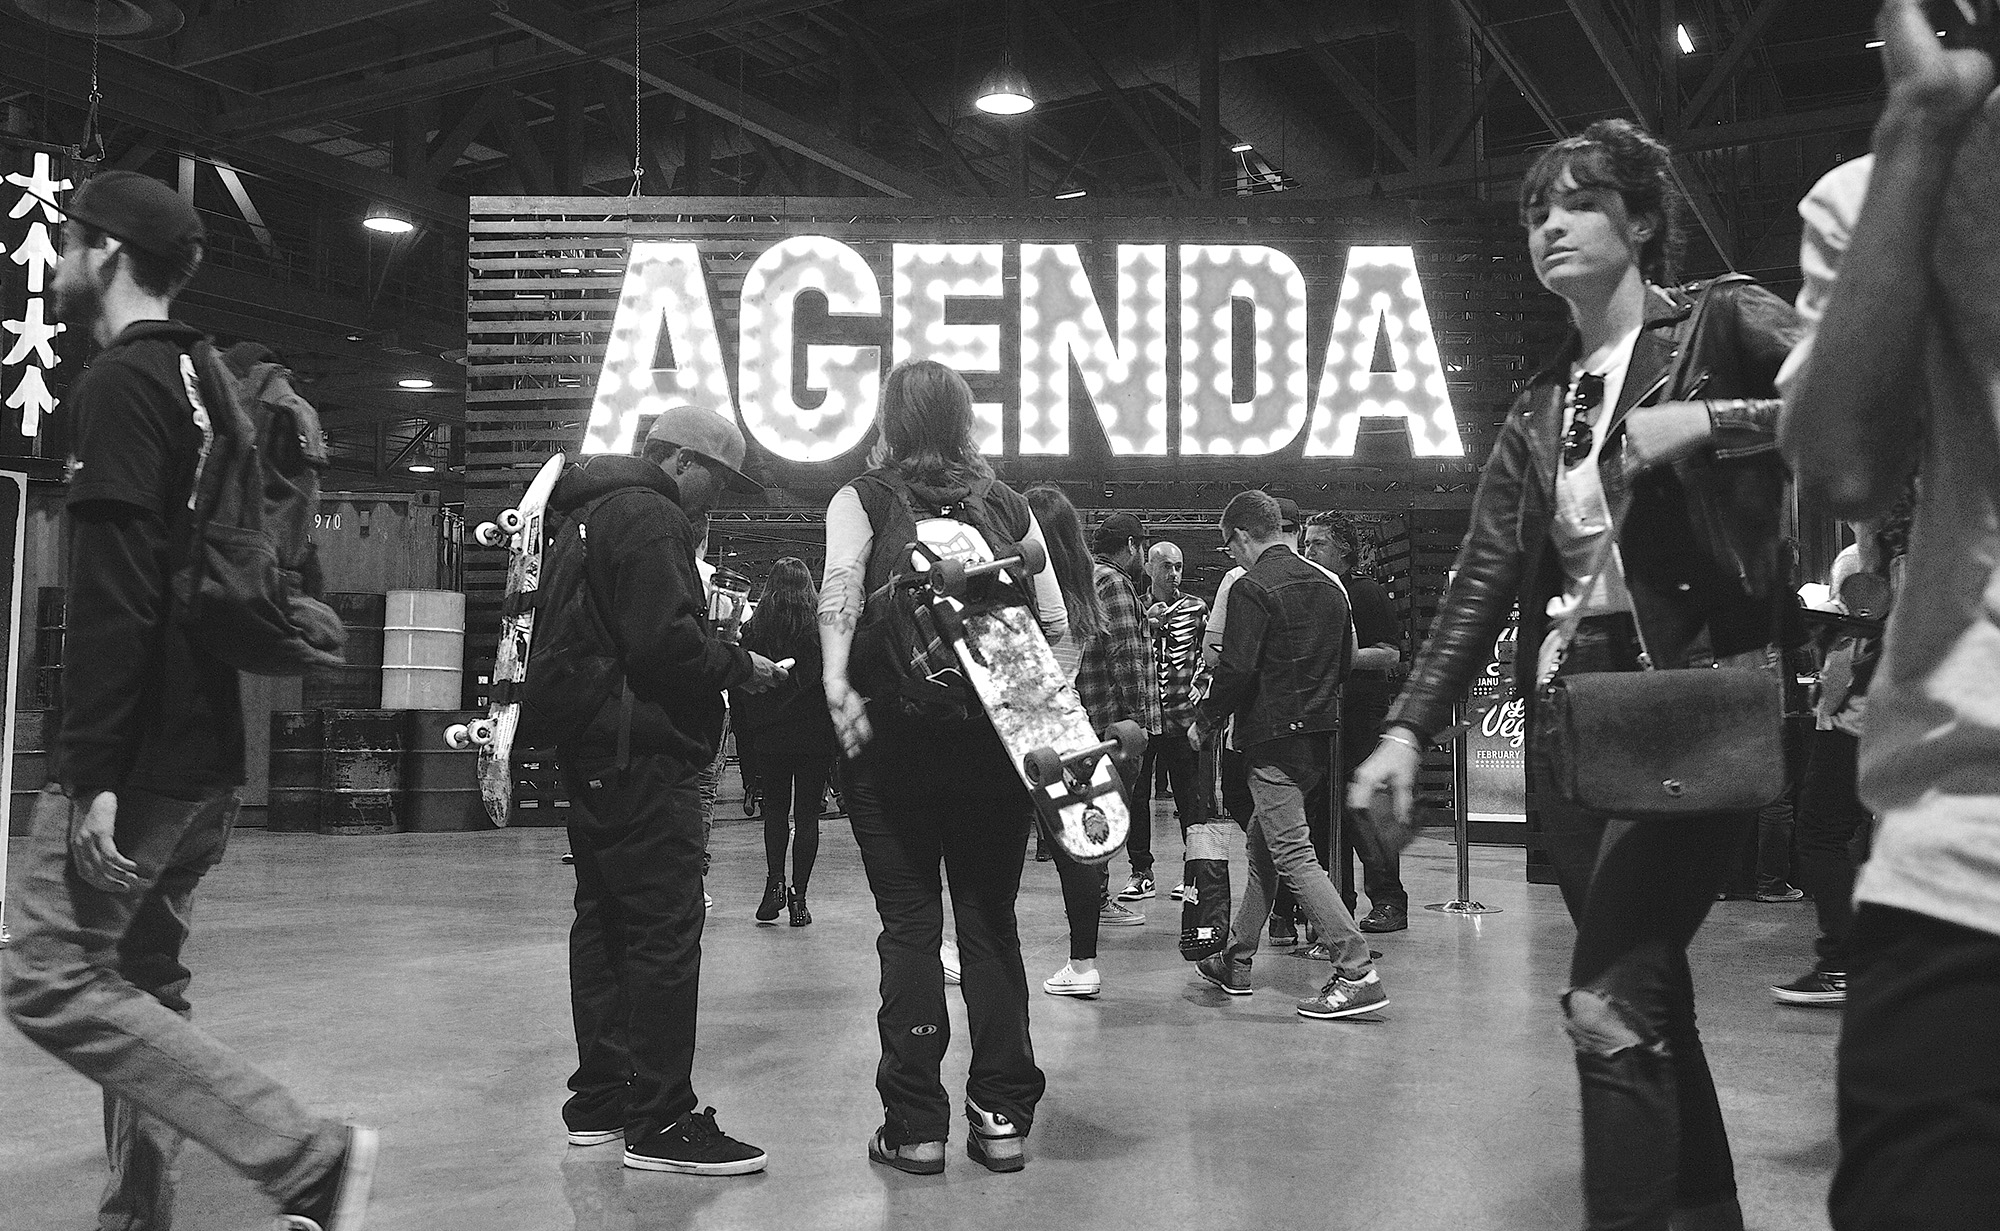 Entrance to the Agenda trade show in Long Beach on Monday.